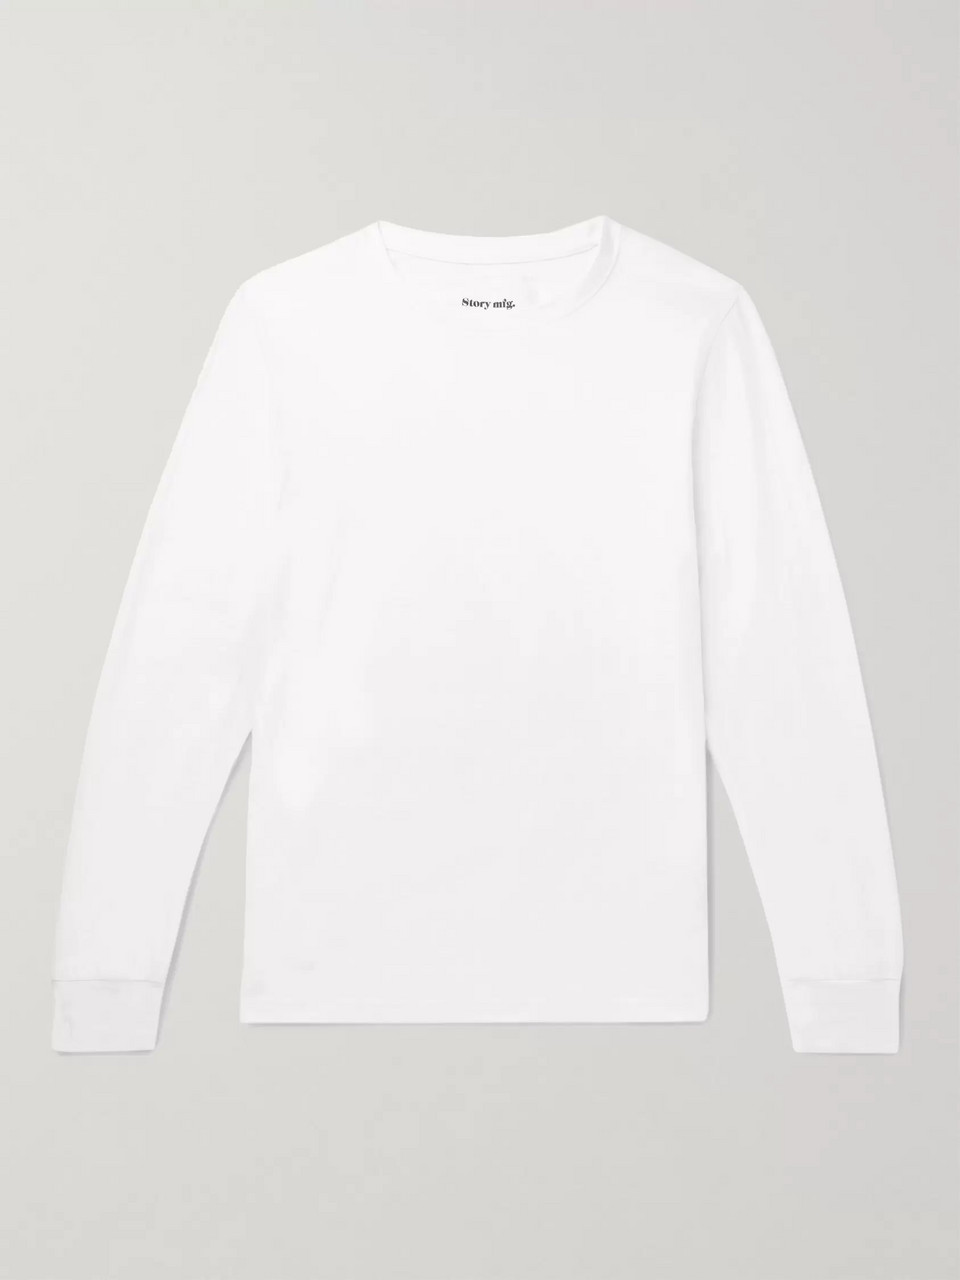 Story Mfg. Cotton-Jersey T-Shirt